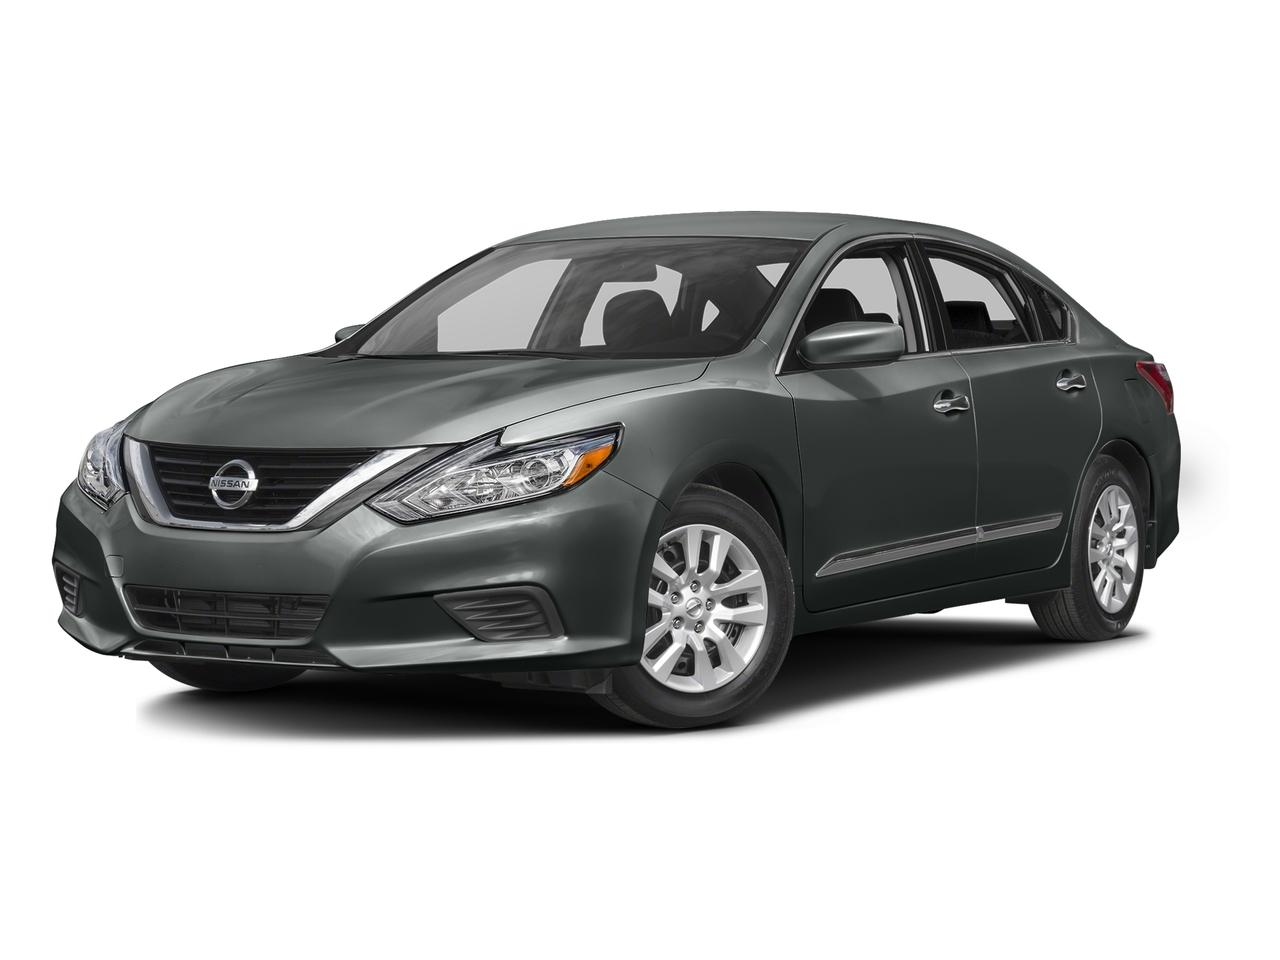 2016 Nissan Altima Vehicle Photo in Stafford, TX 77477